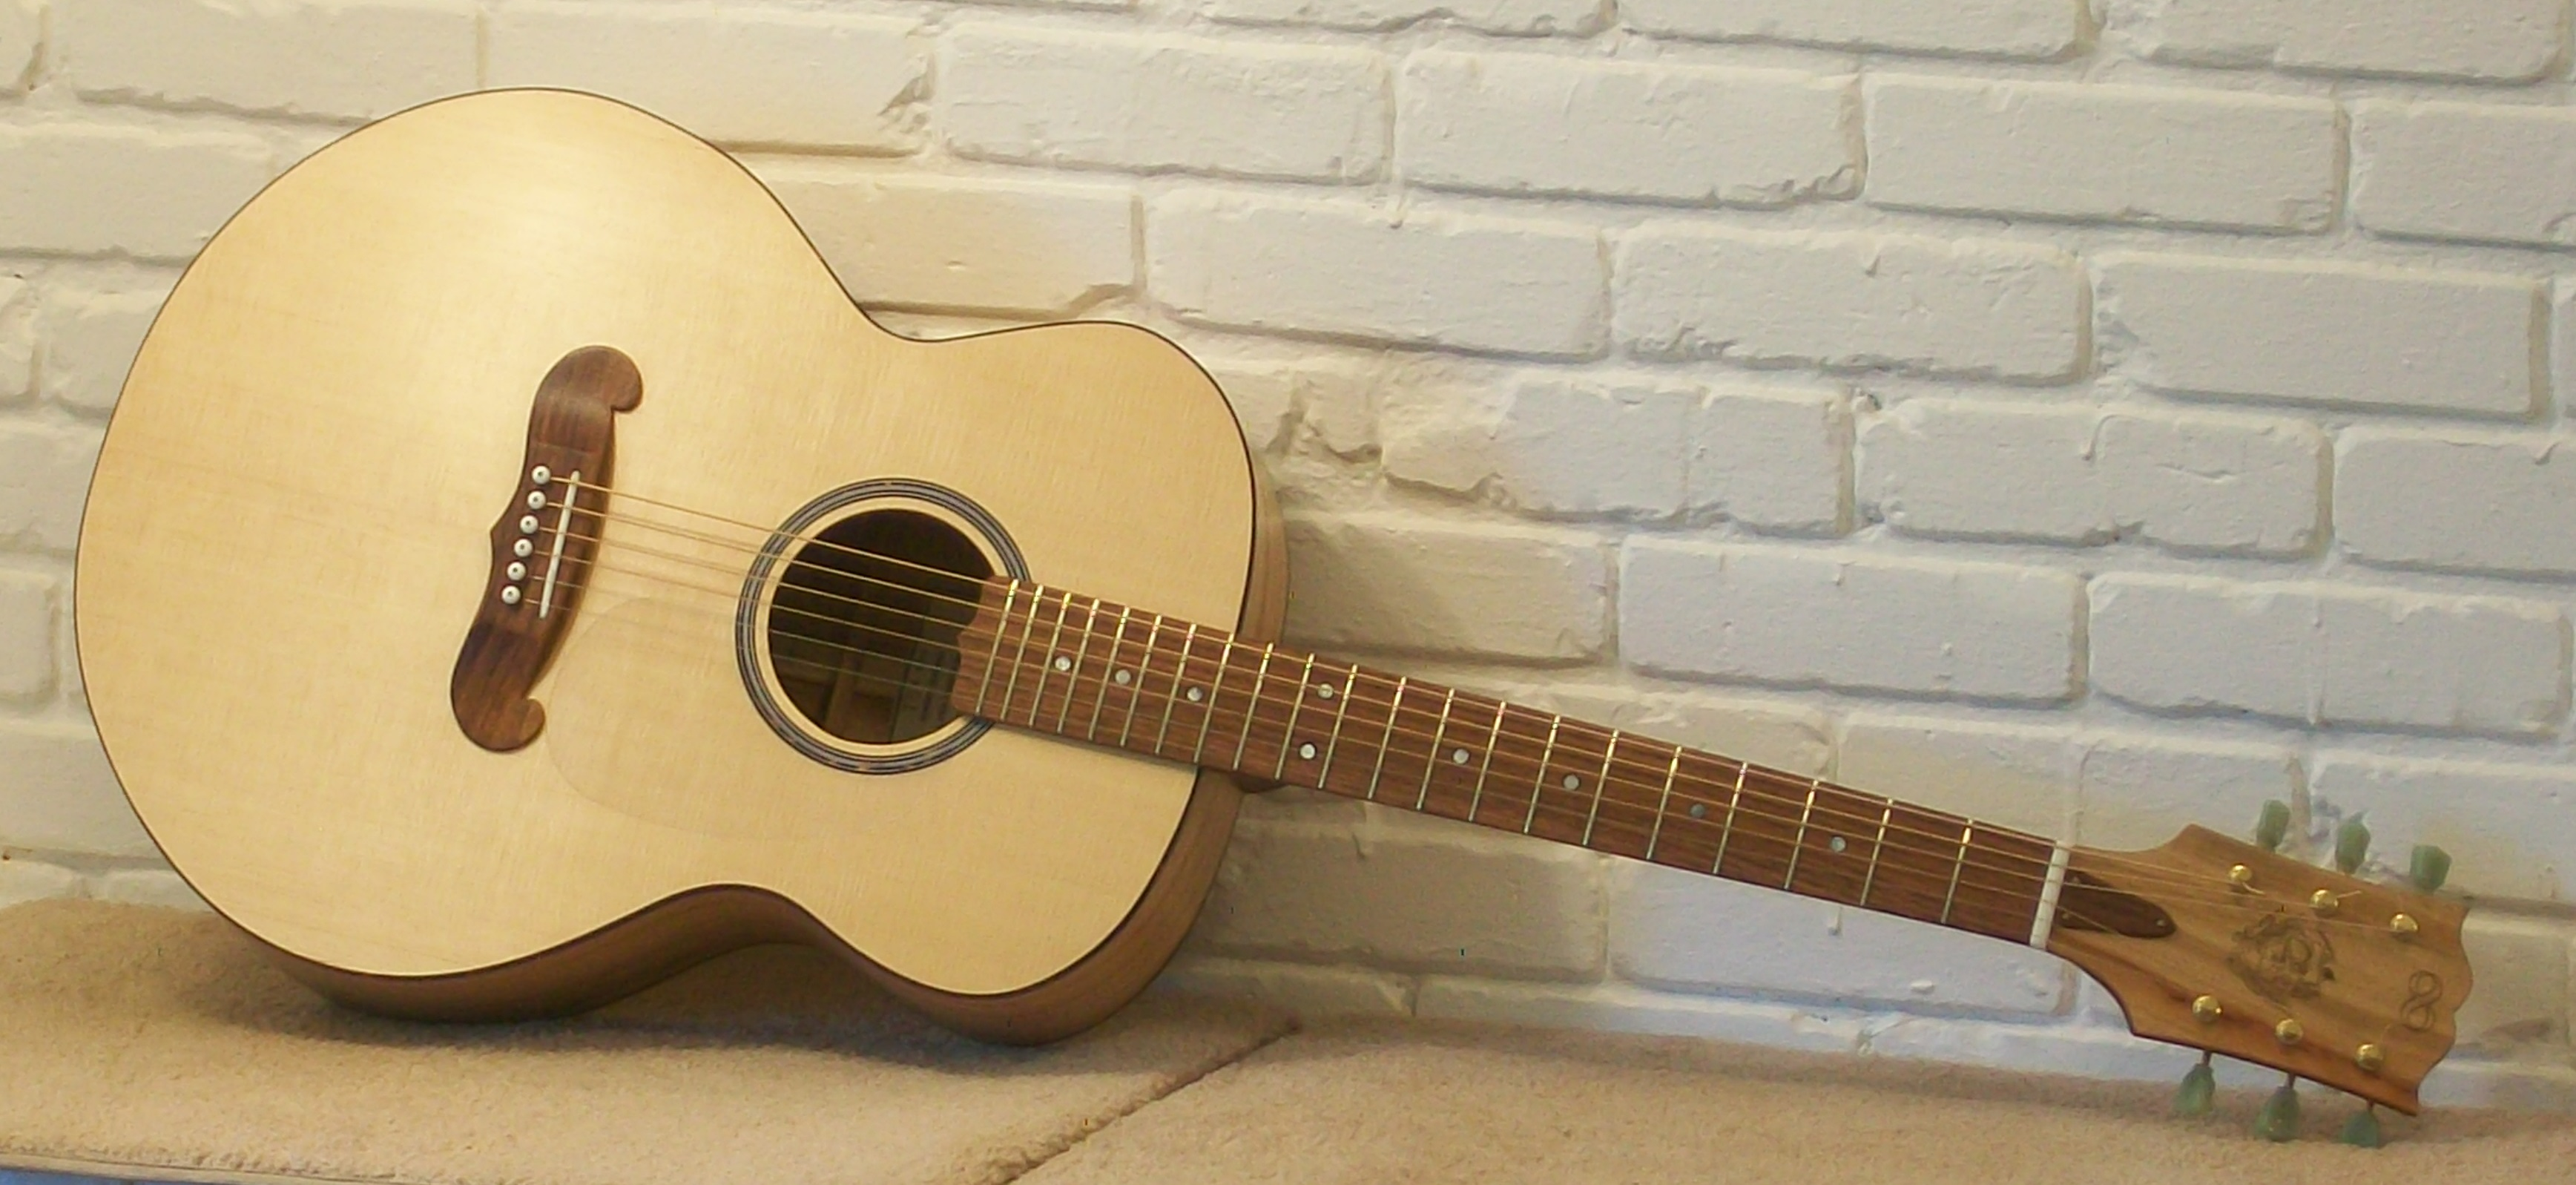 guitar-finished-with-odies-andrew-gibson-front.jpg